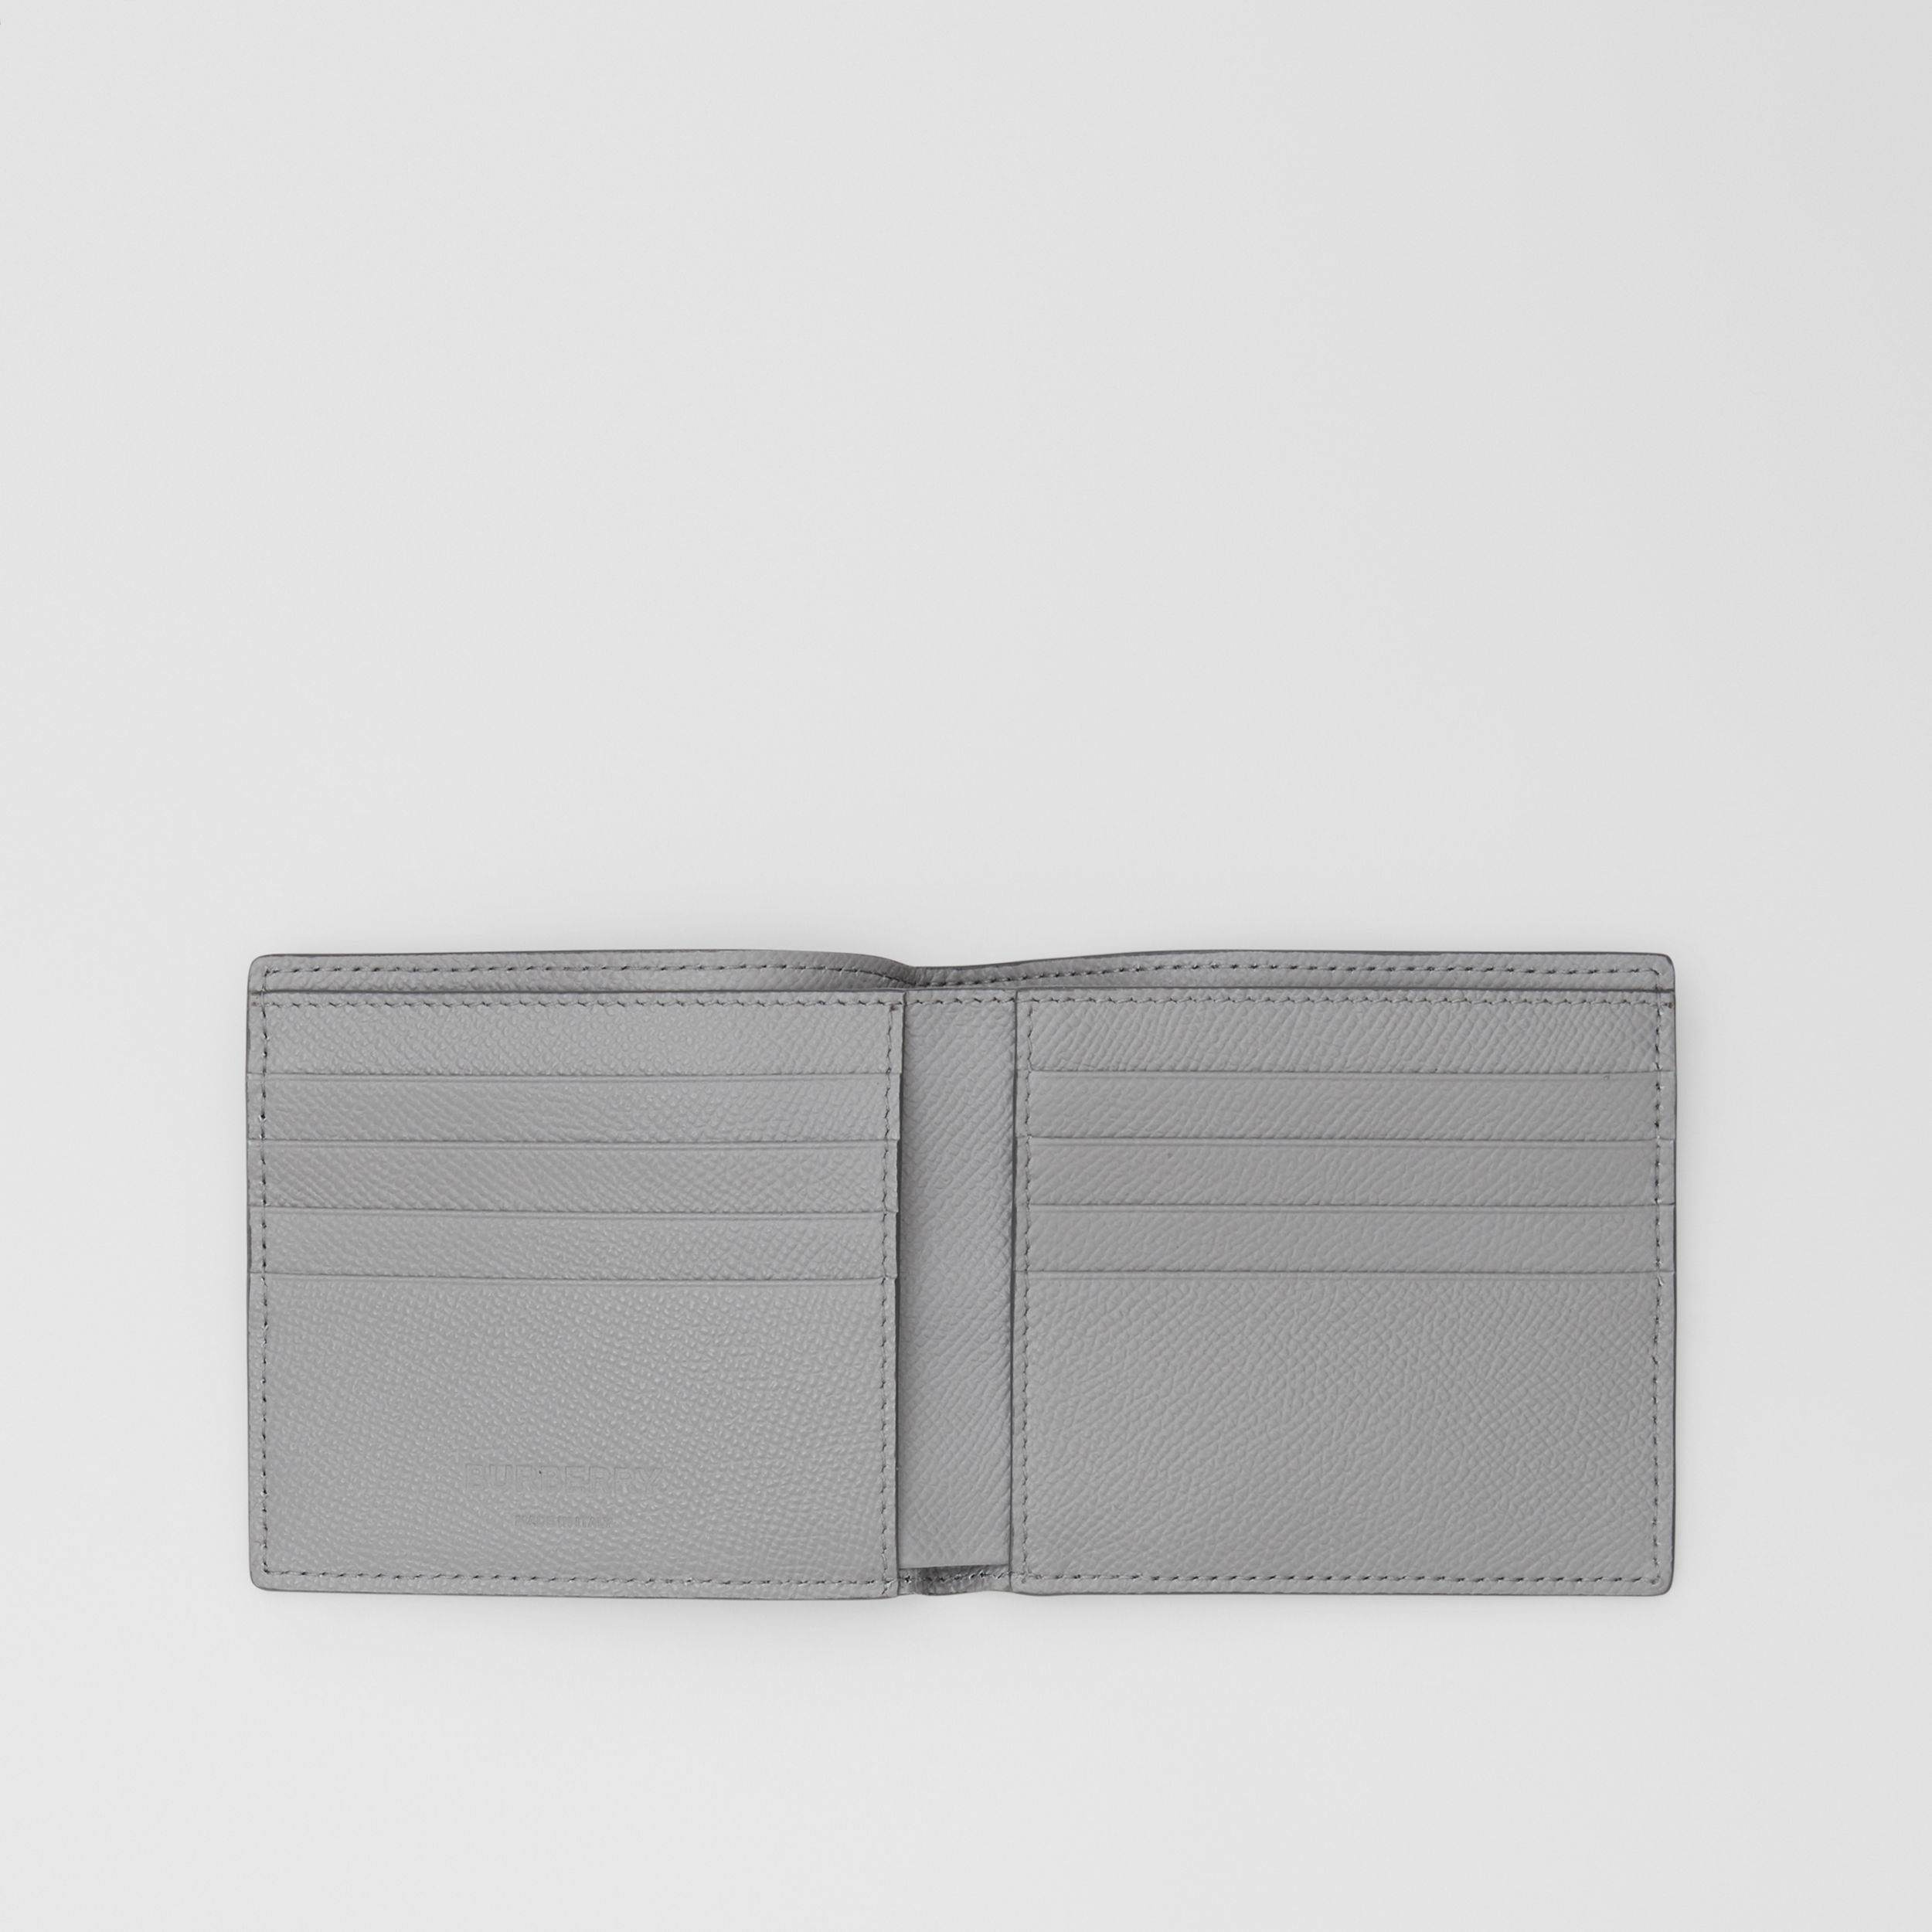 Grainy Leather International Bifold Wallet in Cloud Grey - Men | Burberry - 3